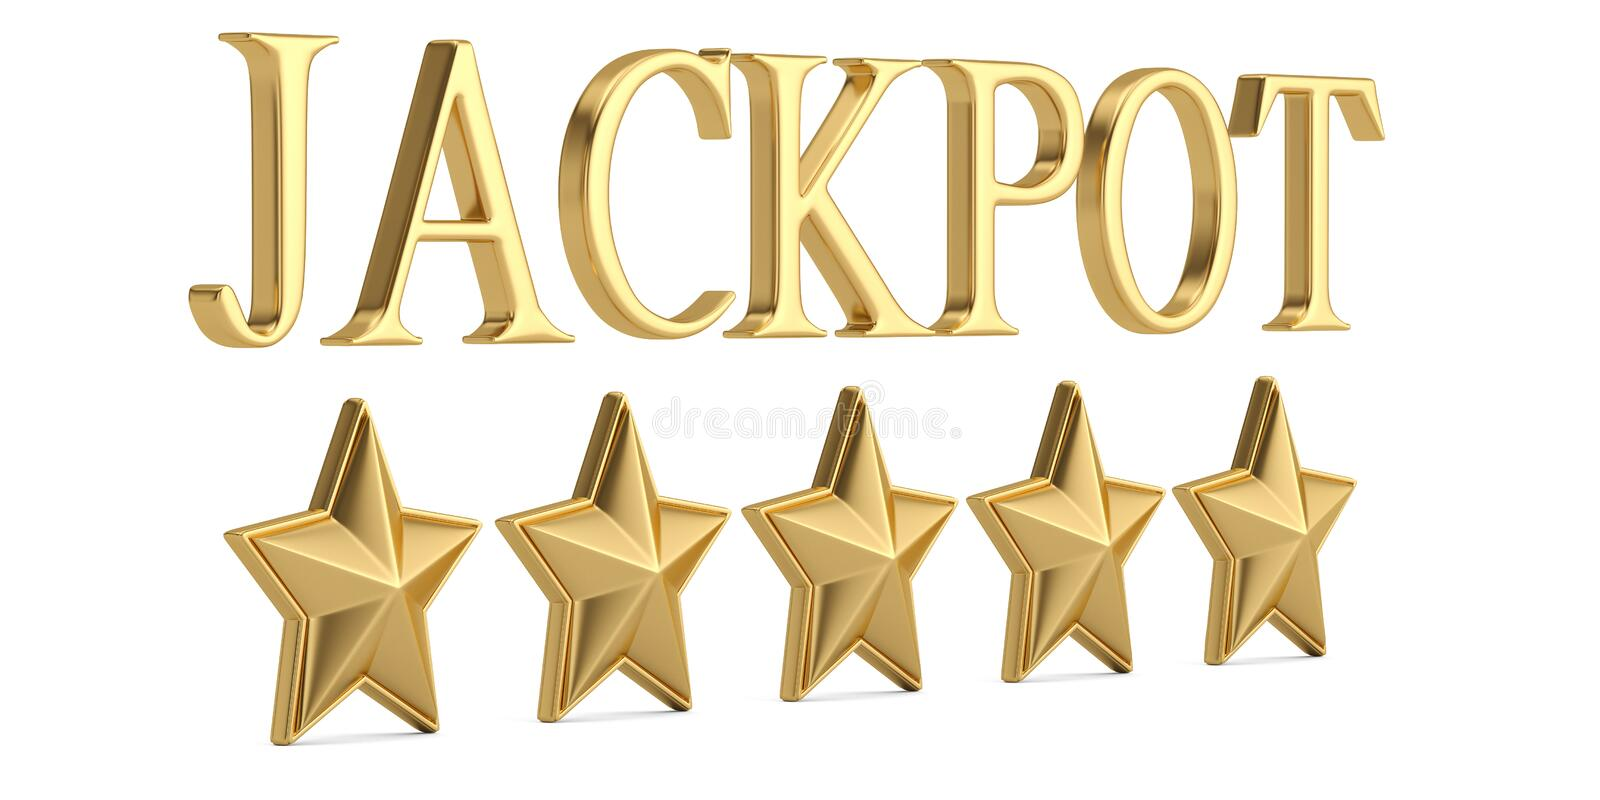 The gold word jackpot with gold stars isolated on white background 3D illustration. royalty free illustration